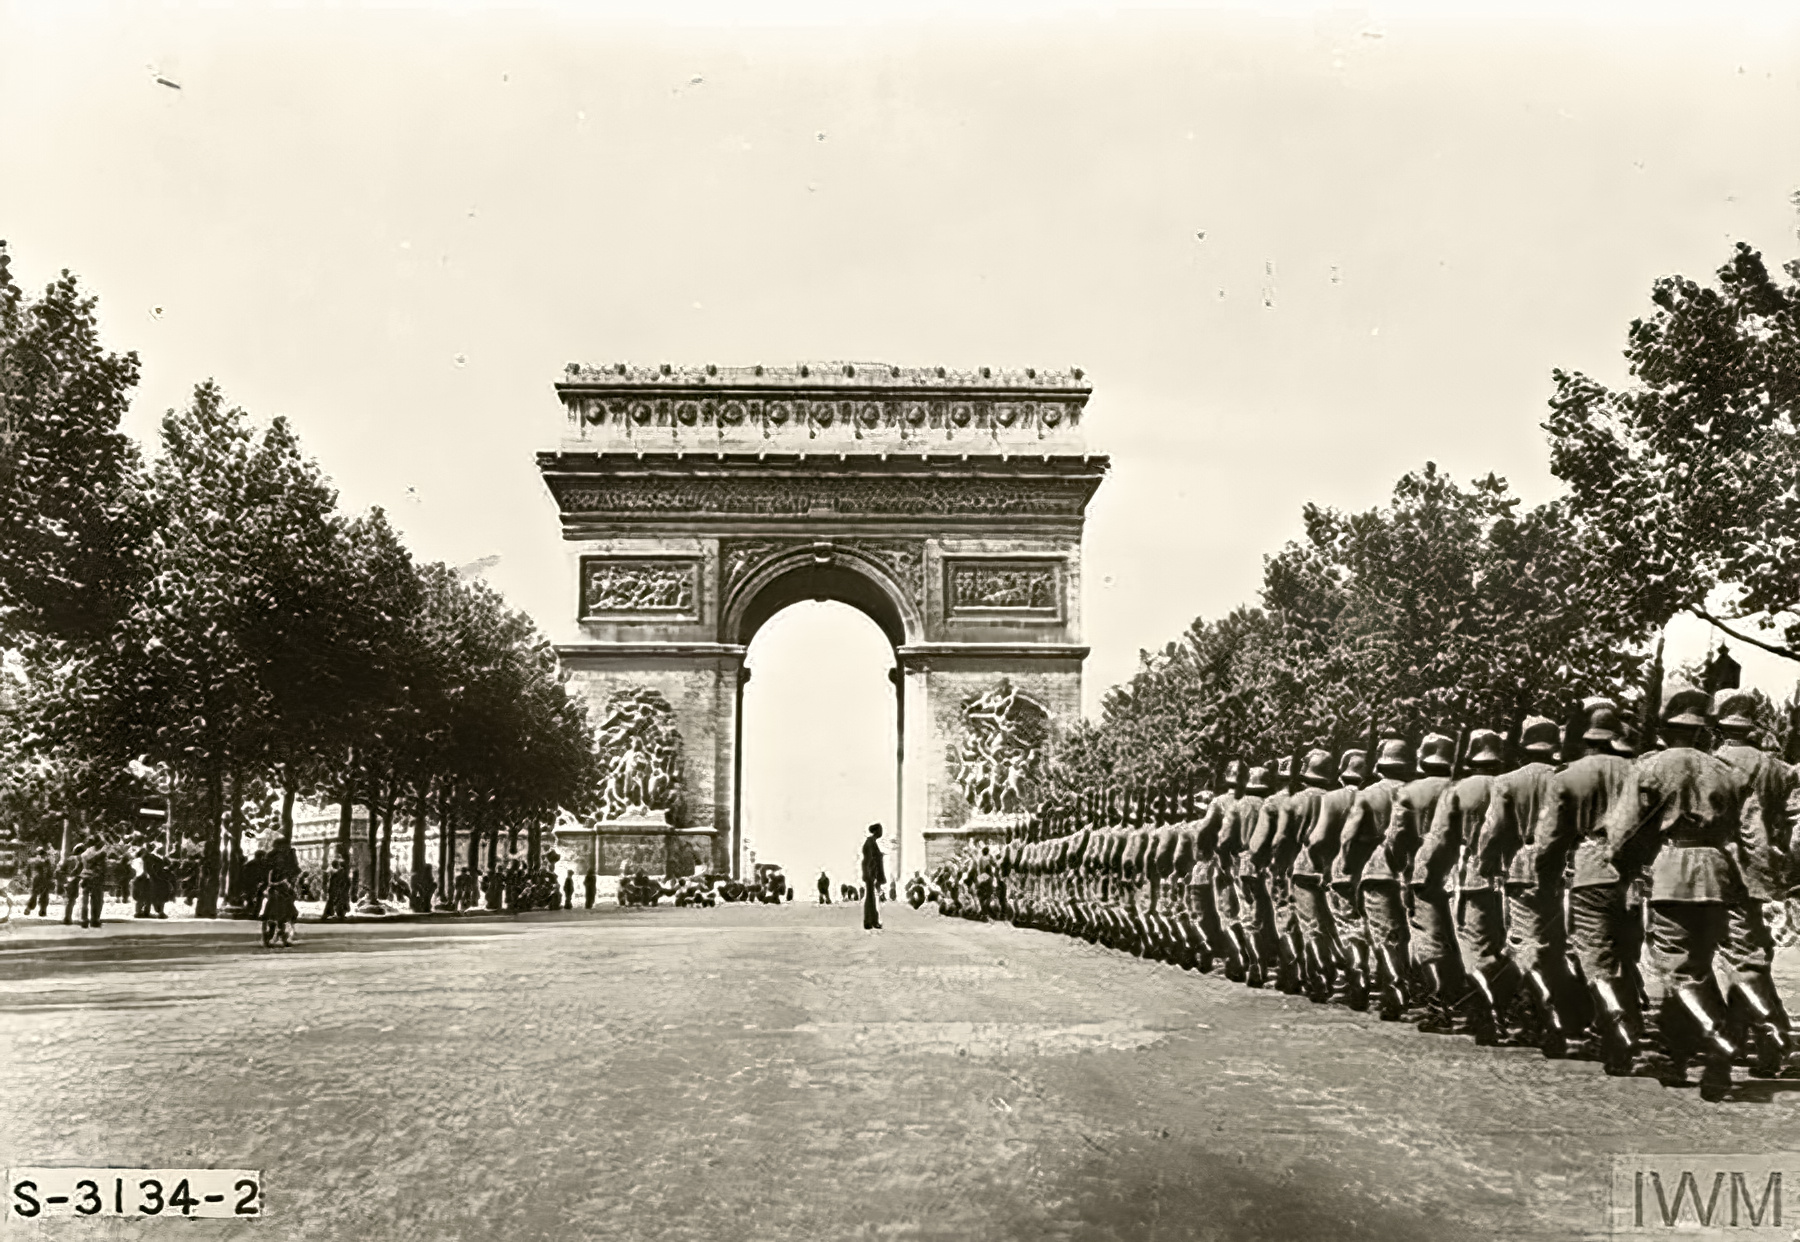 German troops during their victory parade march under the Arc de Triomphe France 1940 IWM